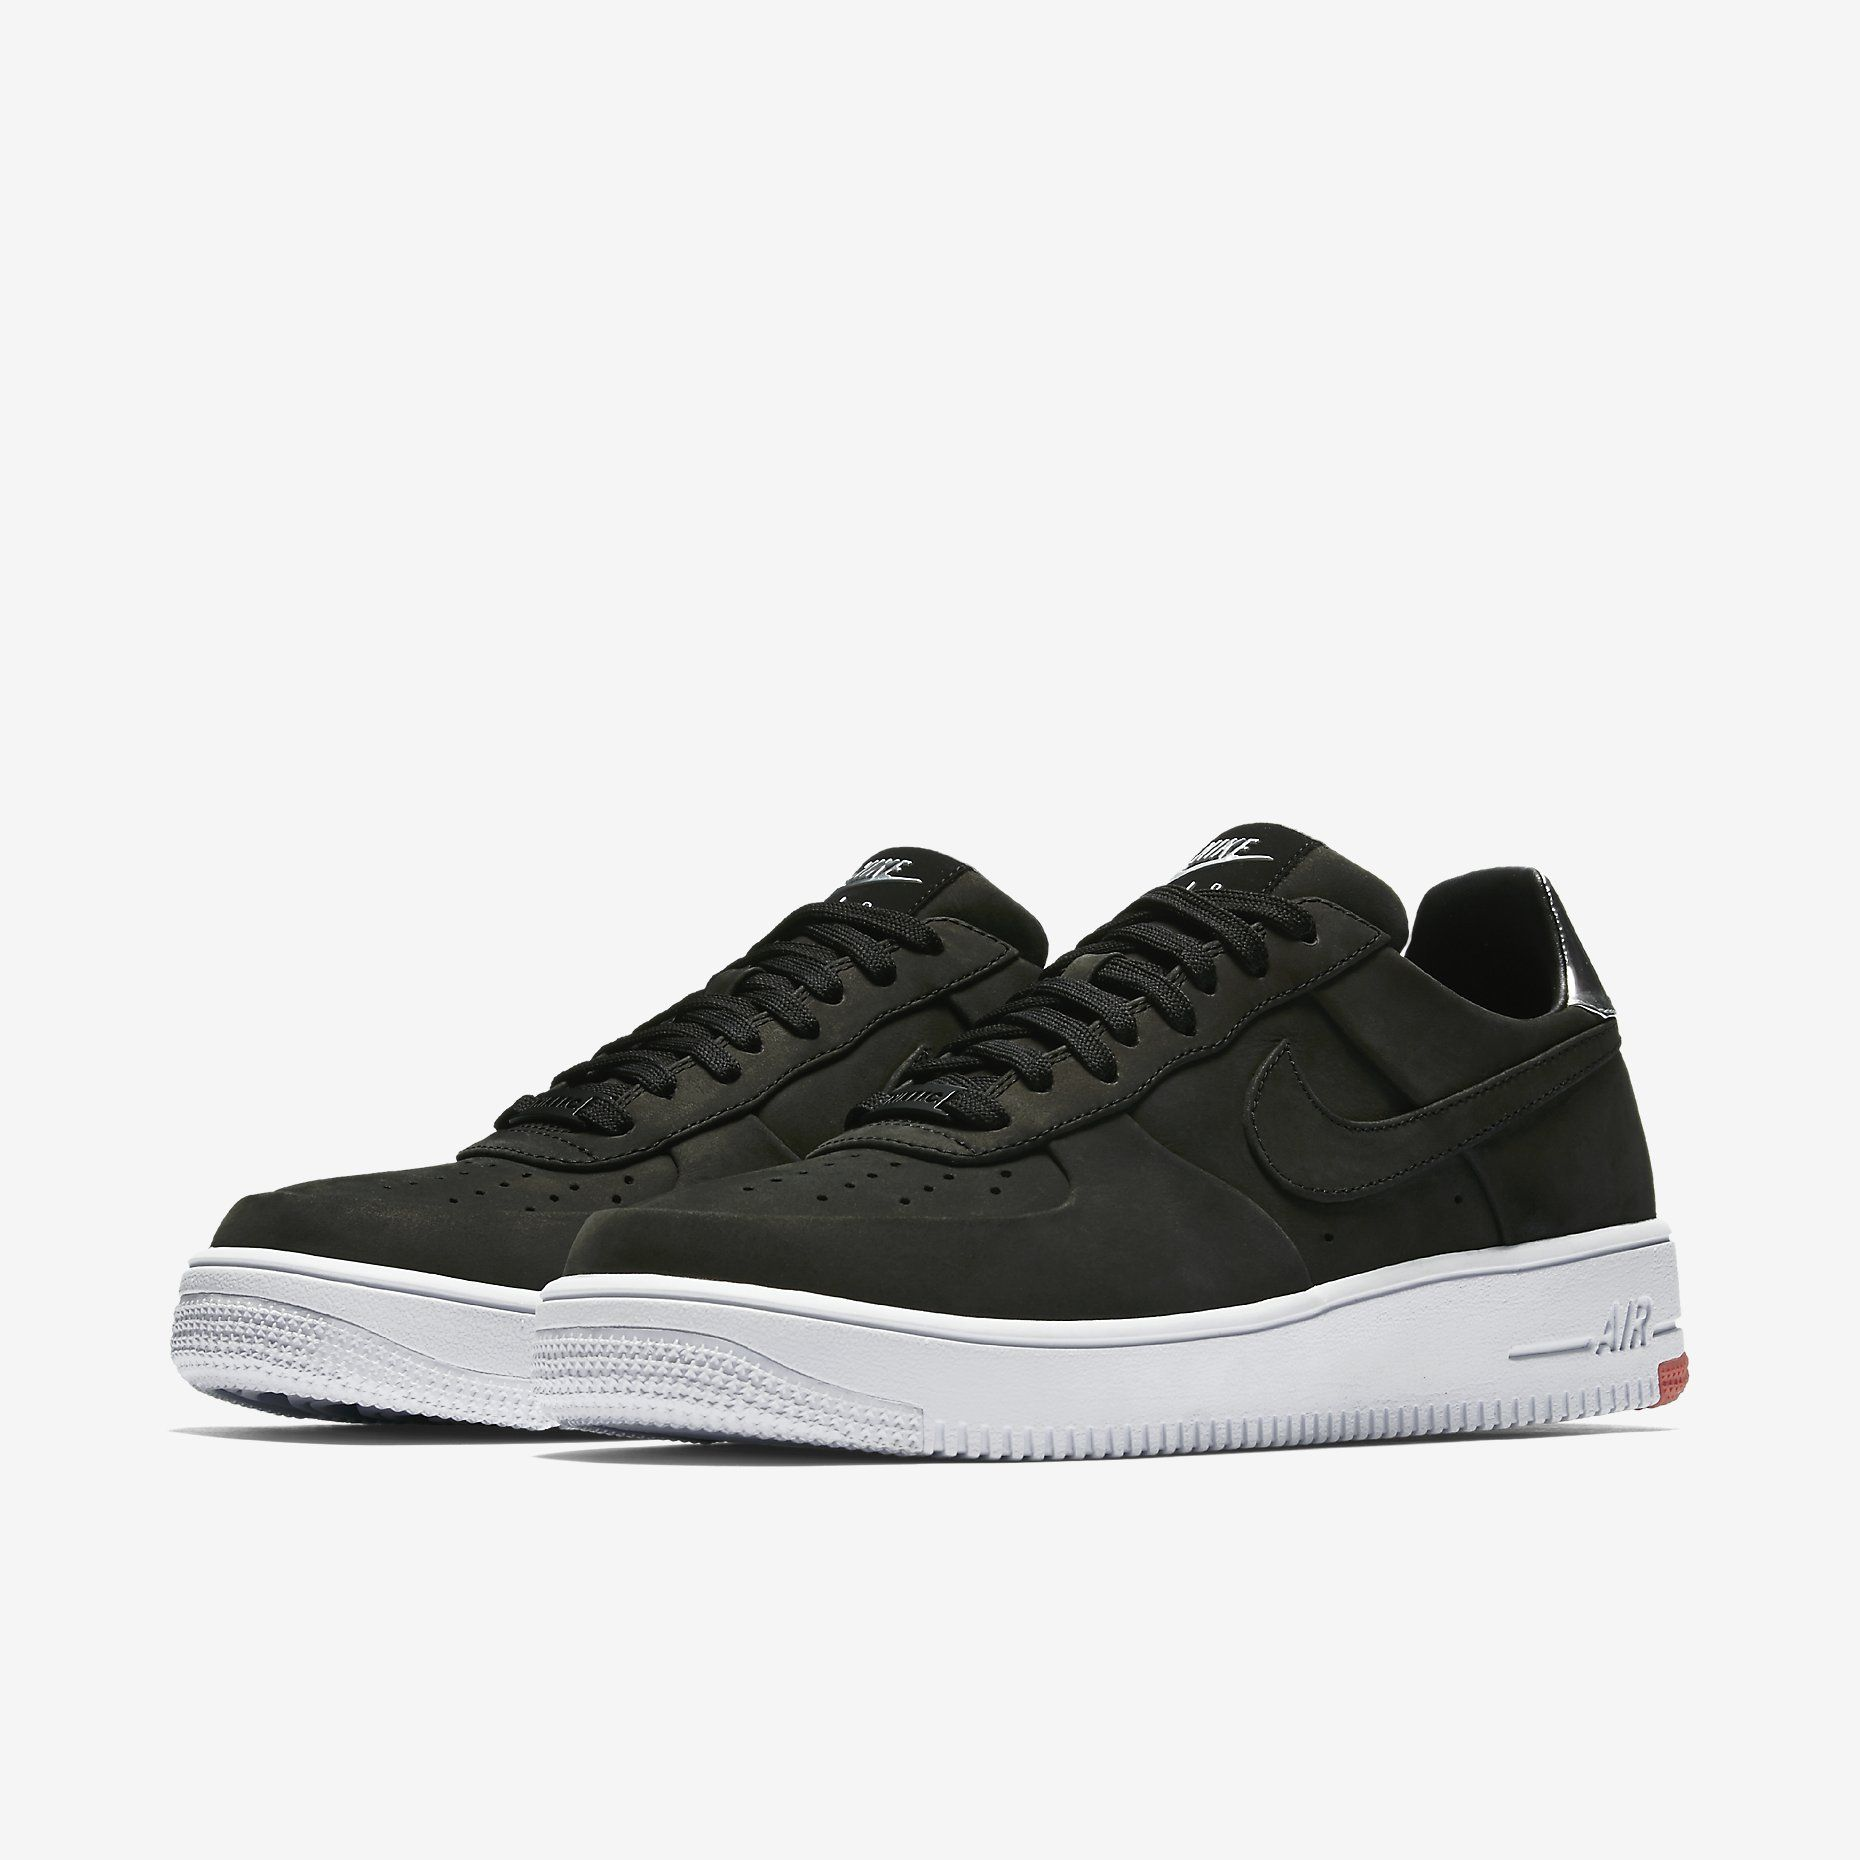 Nike Air Force 1 Ultraforce (865306-001) Black New Arrial #solecollector #